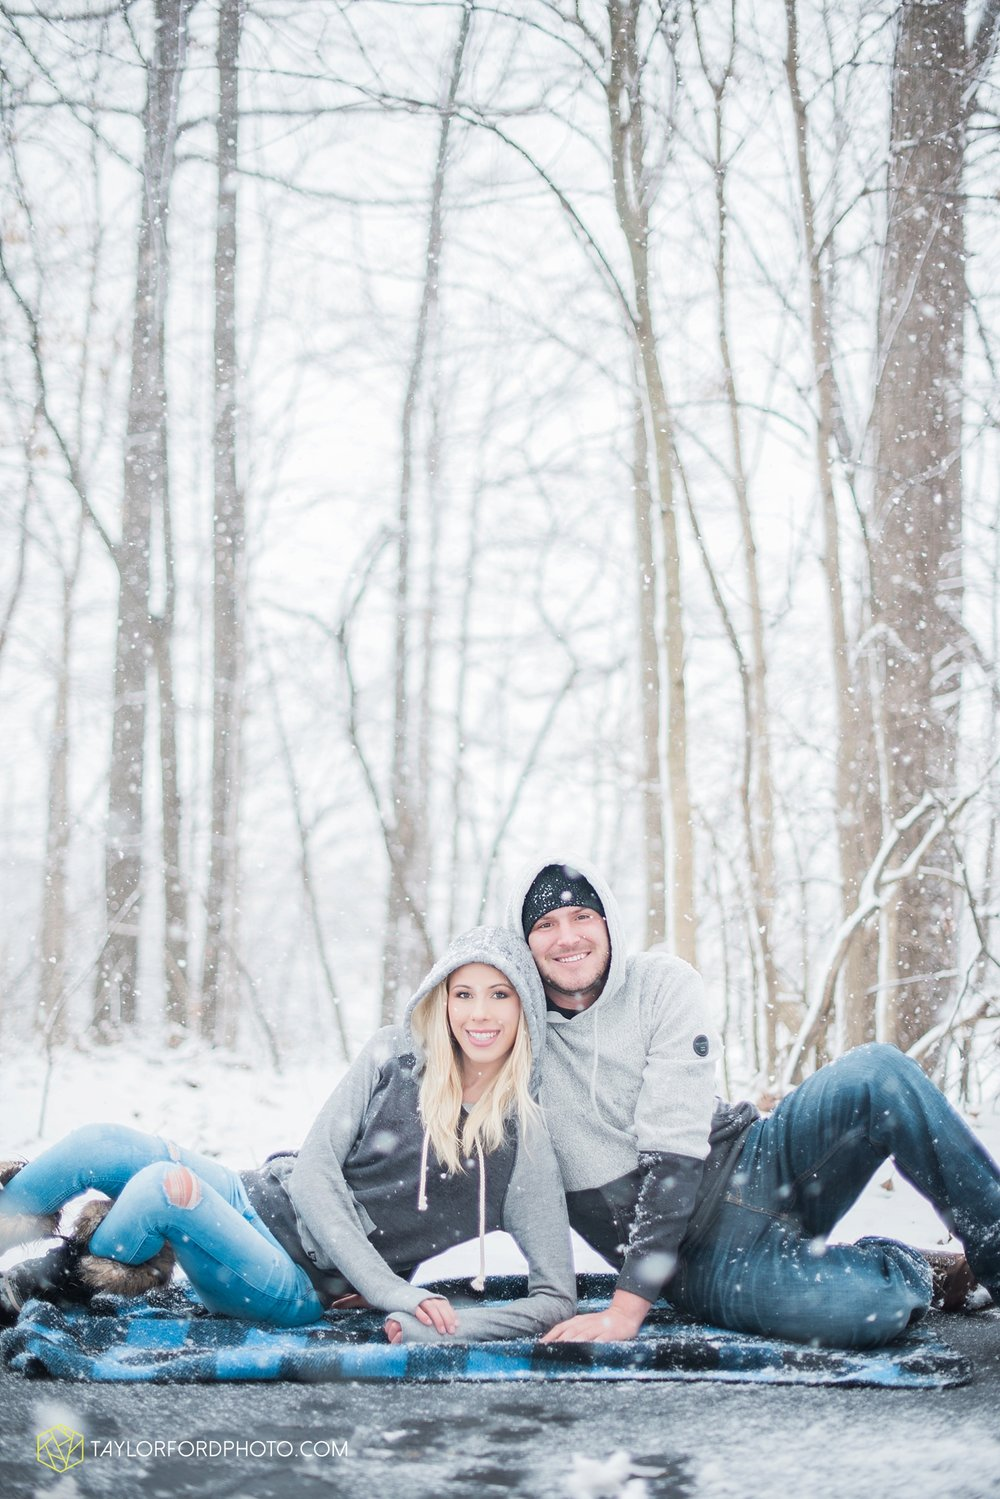 van_wert_ohio_fort_wayne_indiana_engagement_wedding_photographer_taylor_ford24.jpg